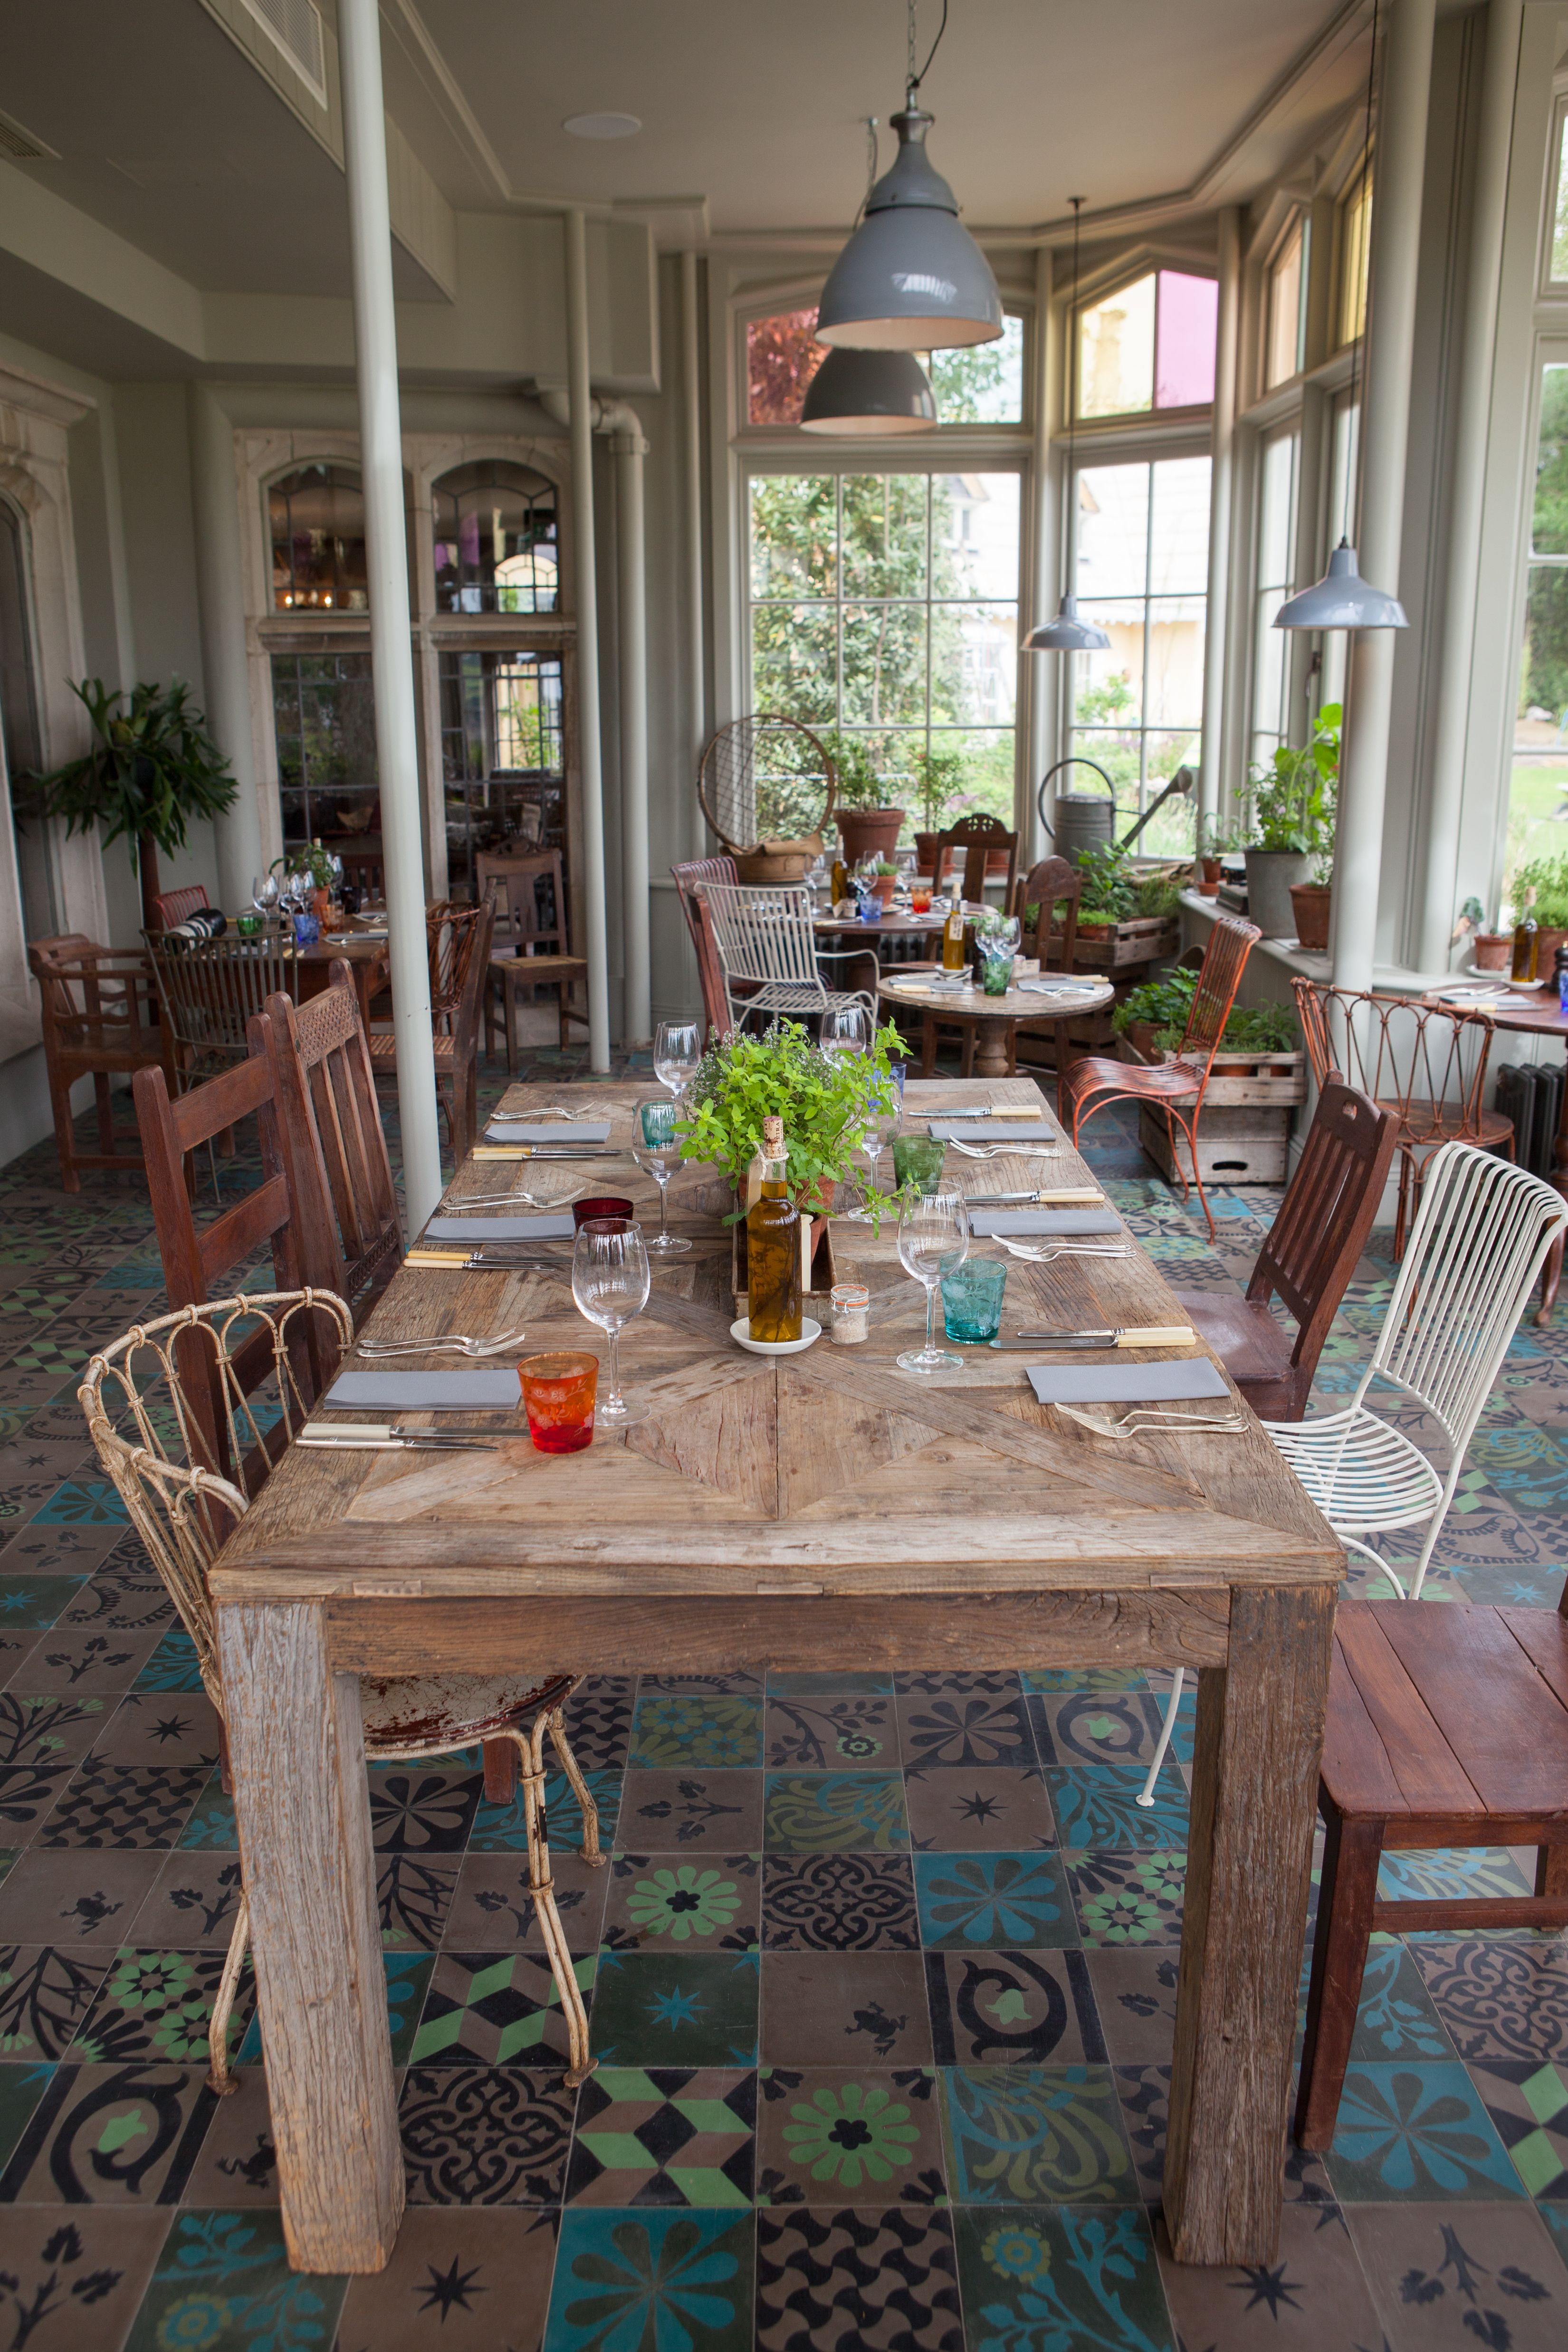 From I Love Your Style Dining Room at The Pig Hotel in New Forest